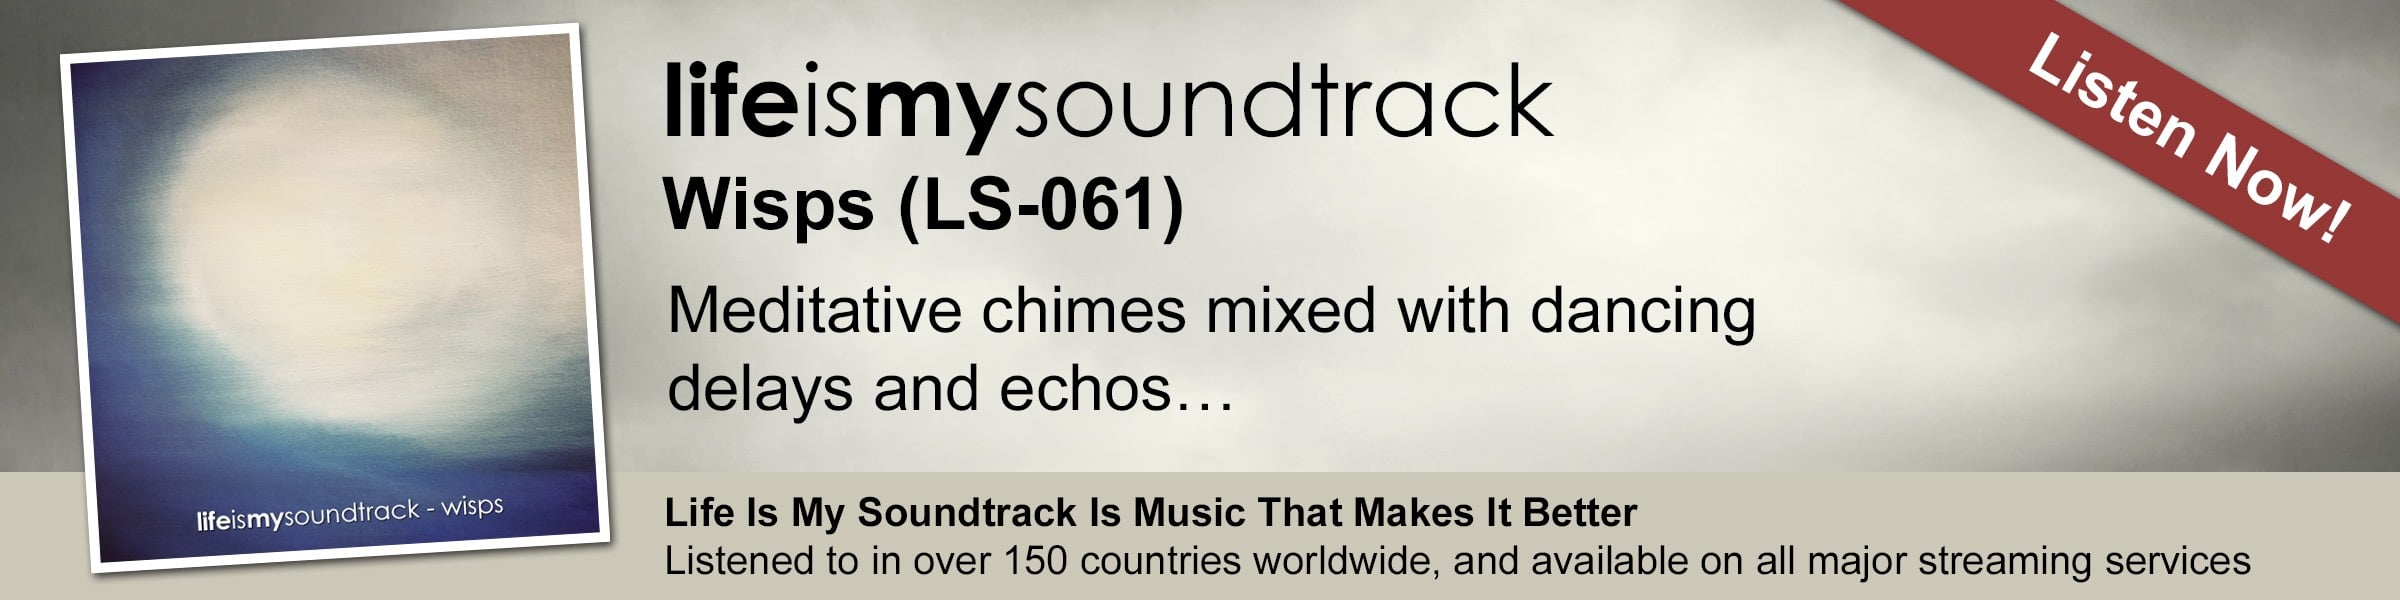 The Life Is My Soundtrack album Wisps - Meditative chimes mixed with dancing delays and echos